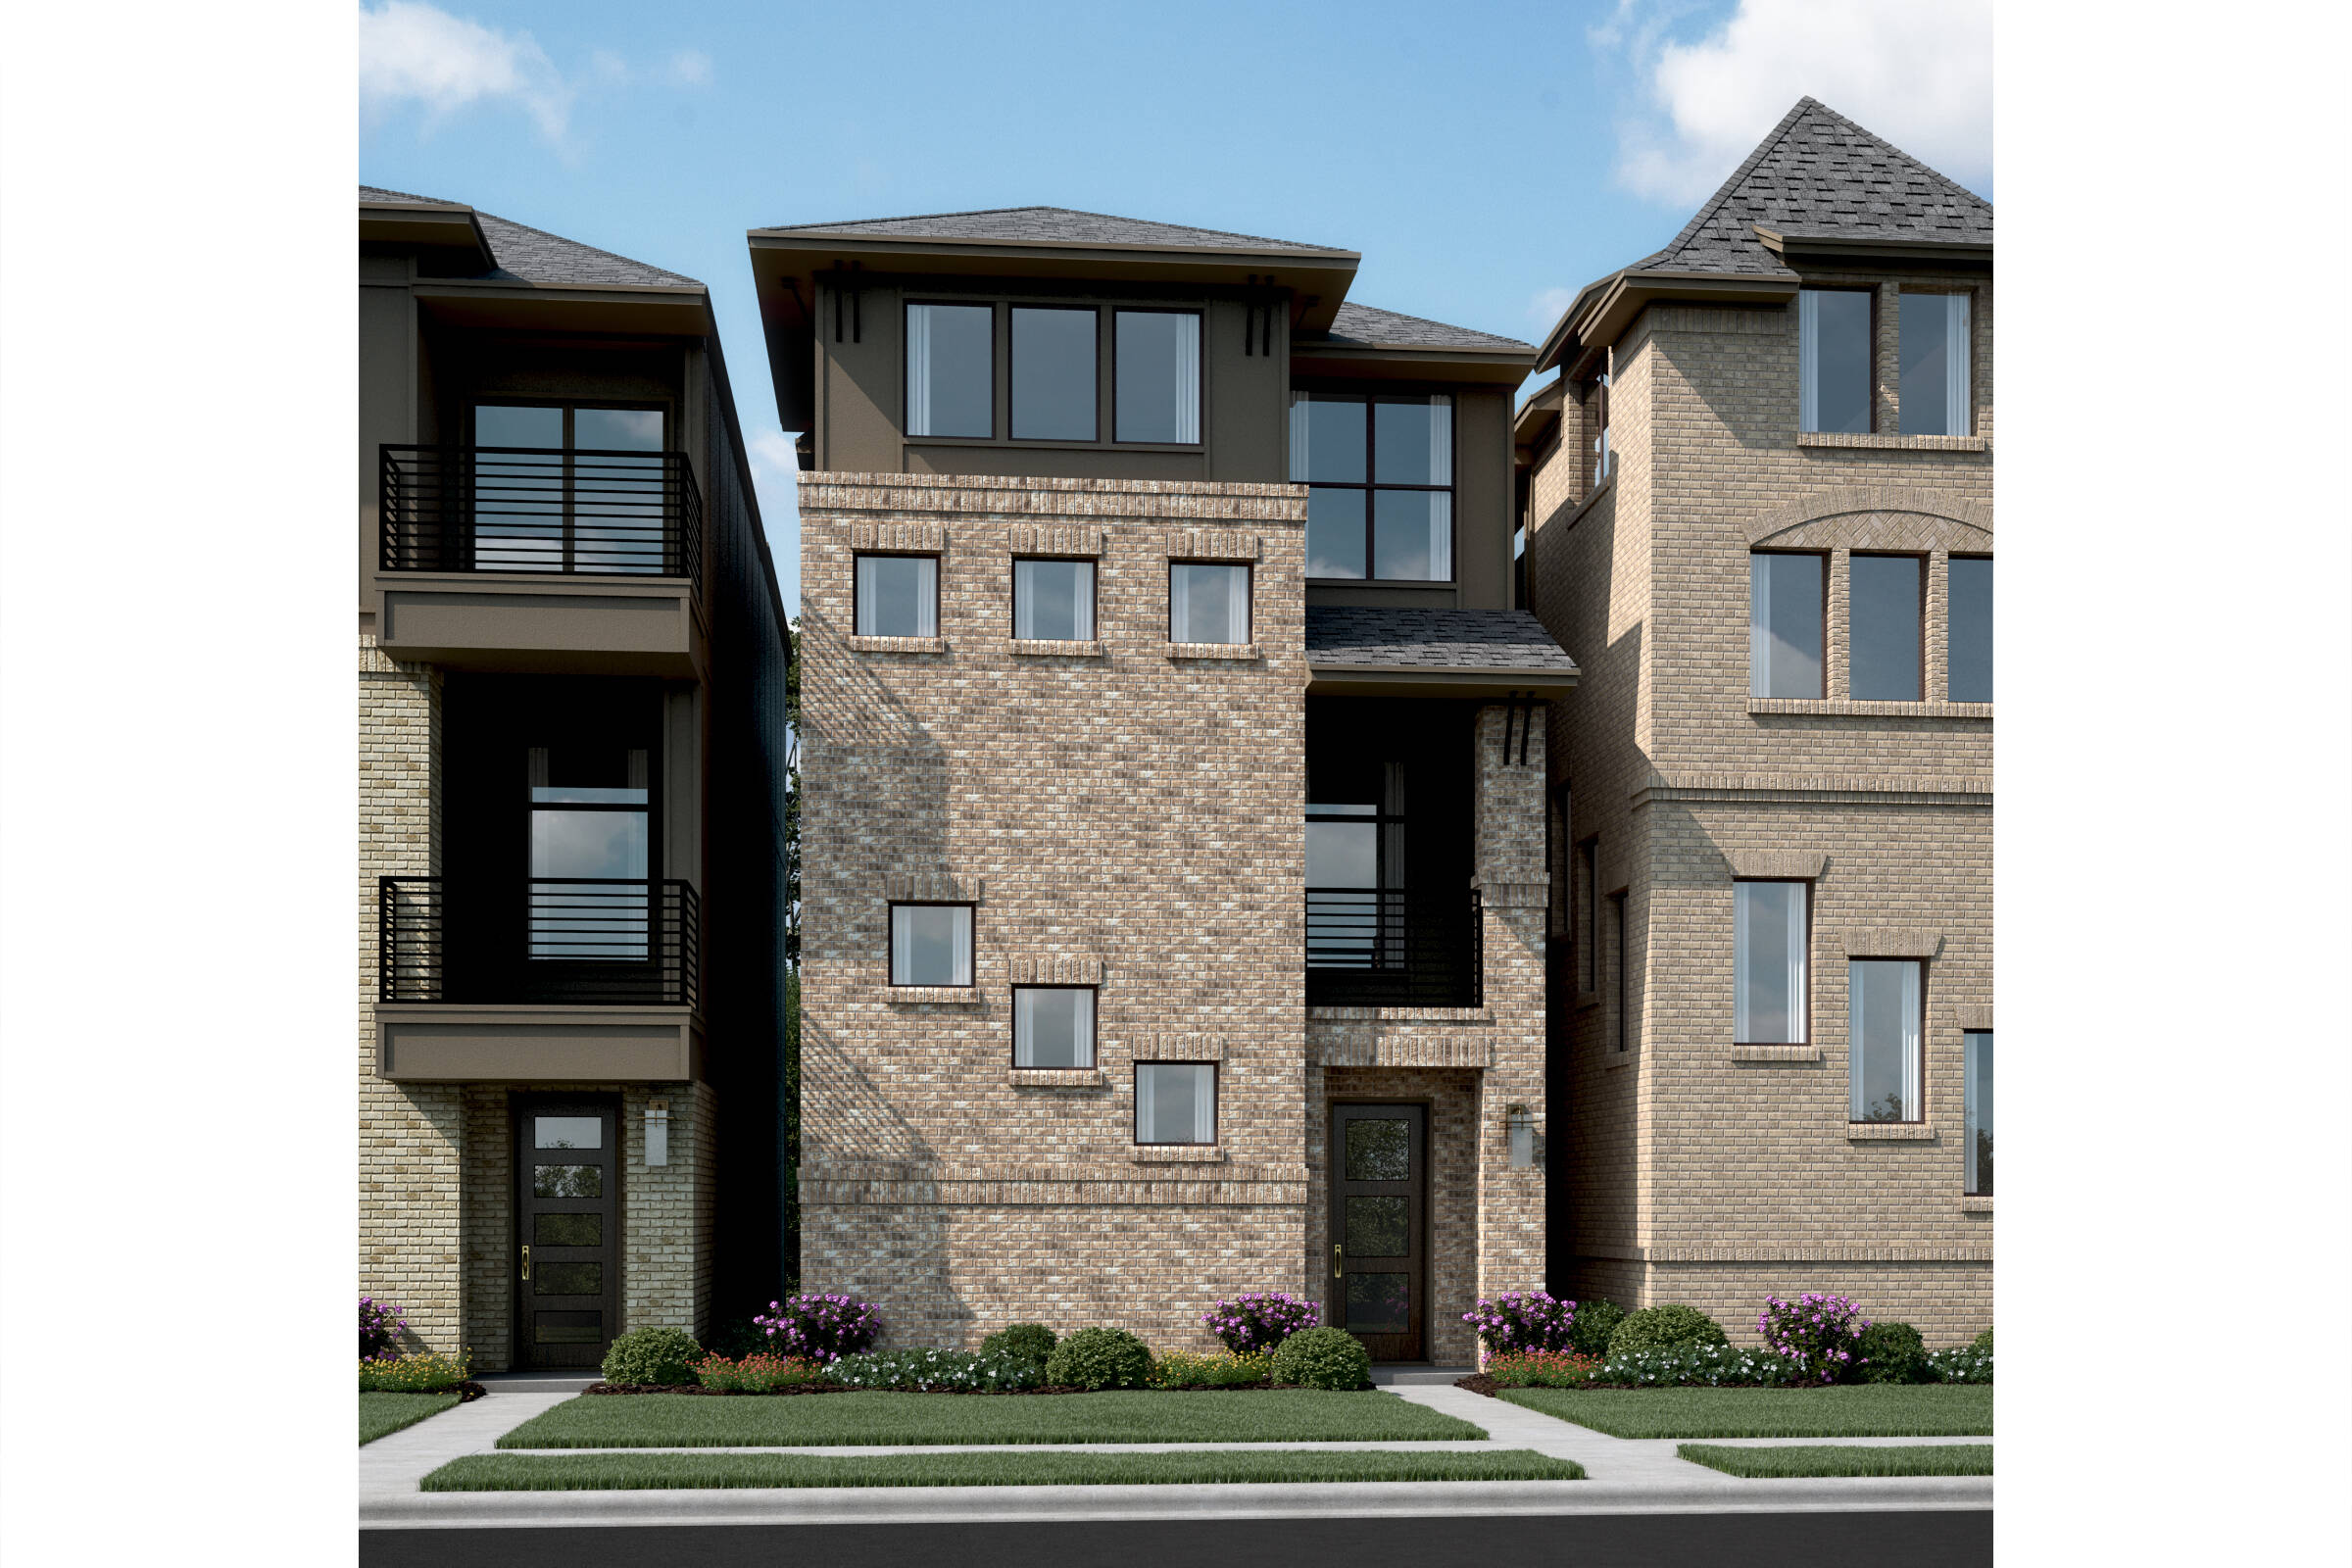 Meredith S elev new home in Dallas